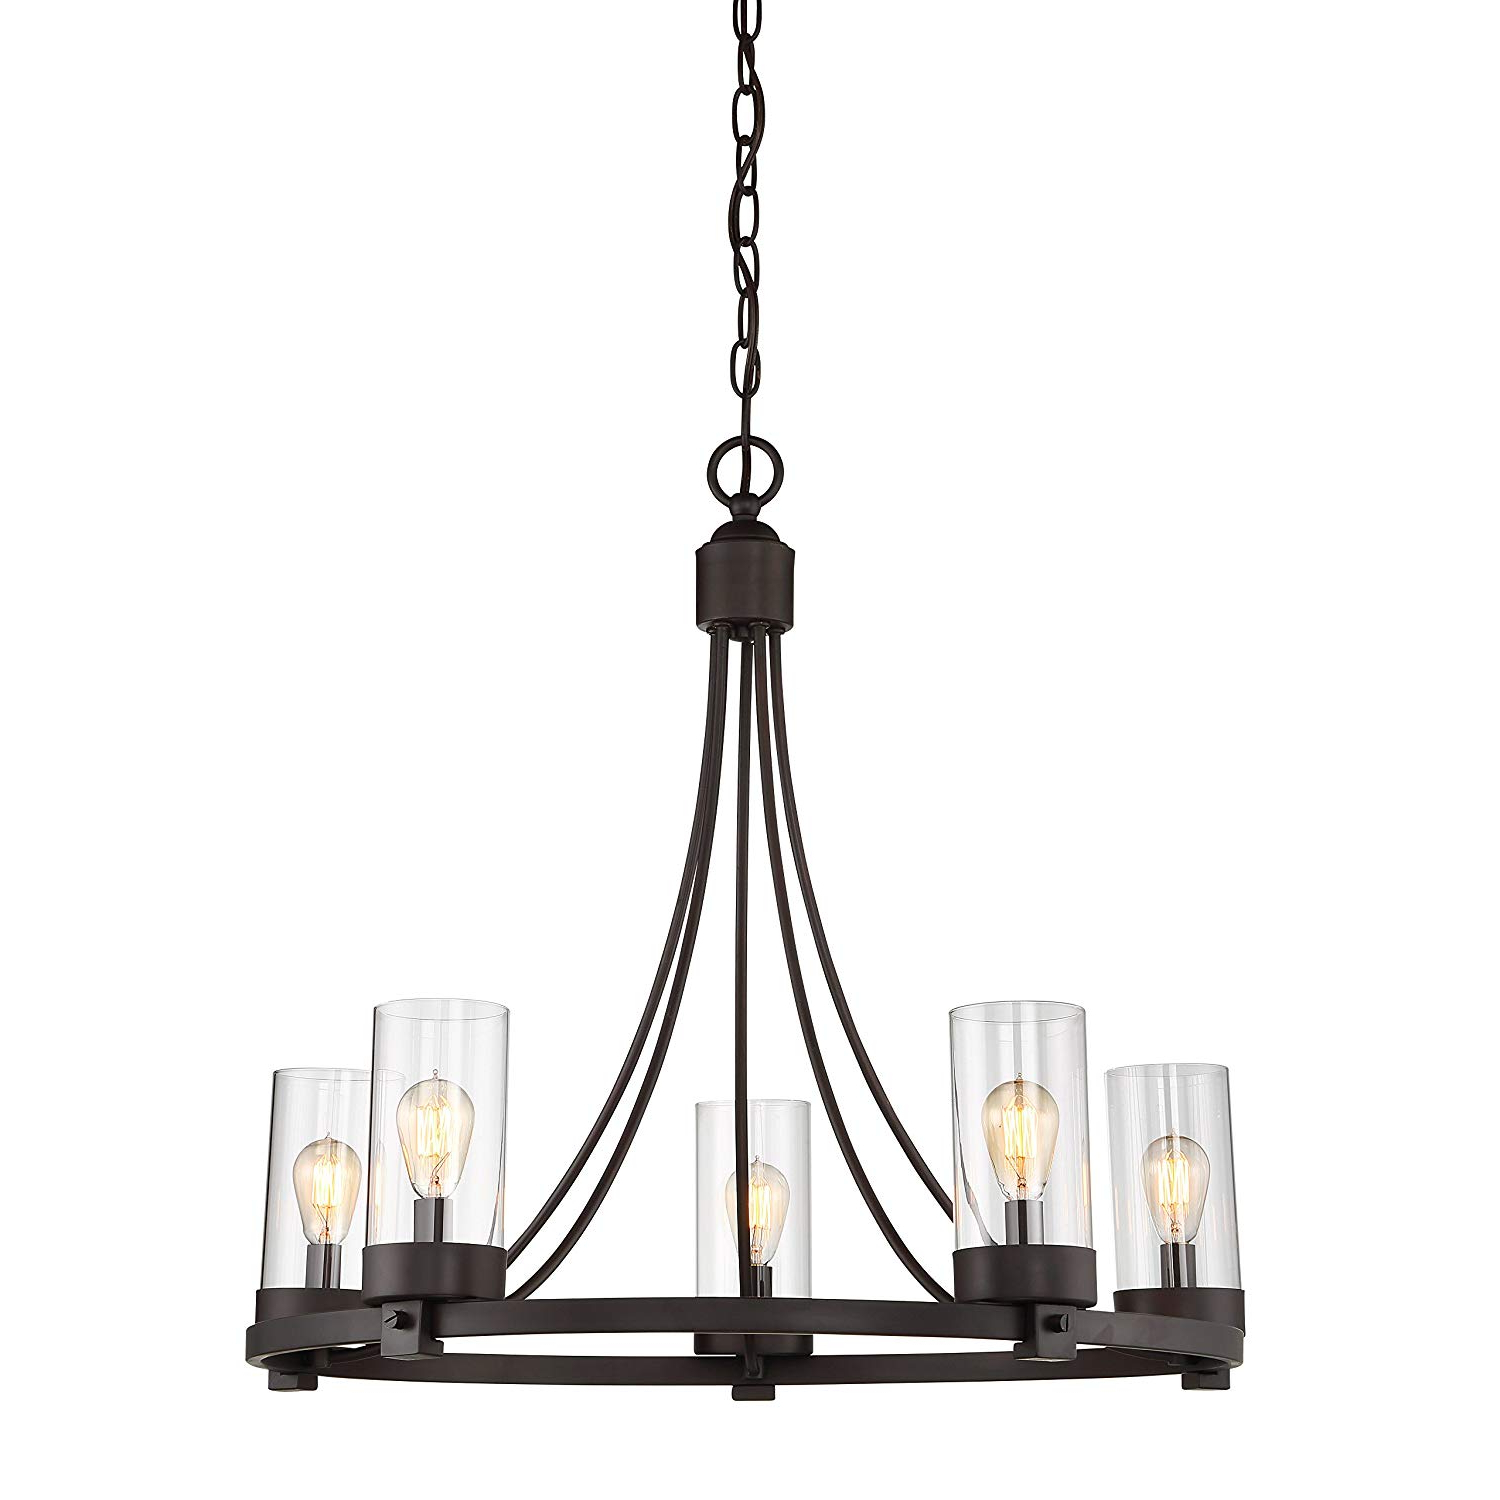 Popular Shaylee 8 Light Candle Style Chandeliers With Regard To Agave Oil Rubbed Bronze 5 Light Candle Style Chandelier (View 23 of 25)